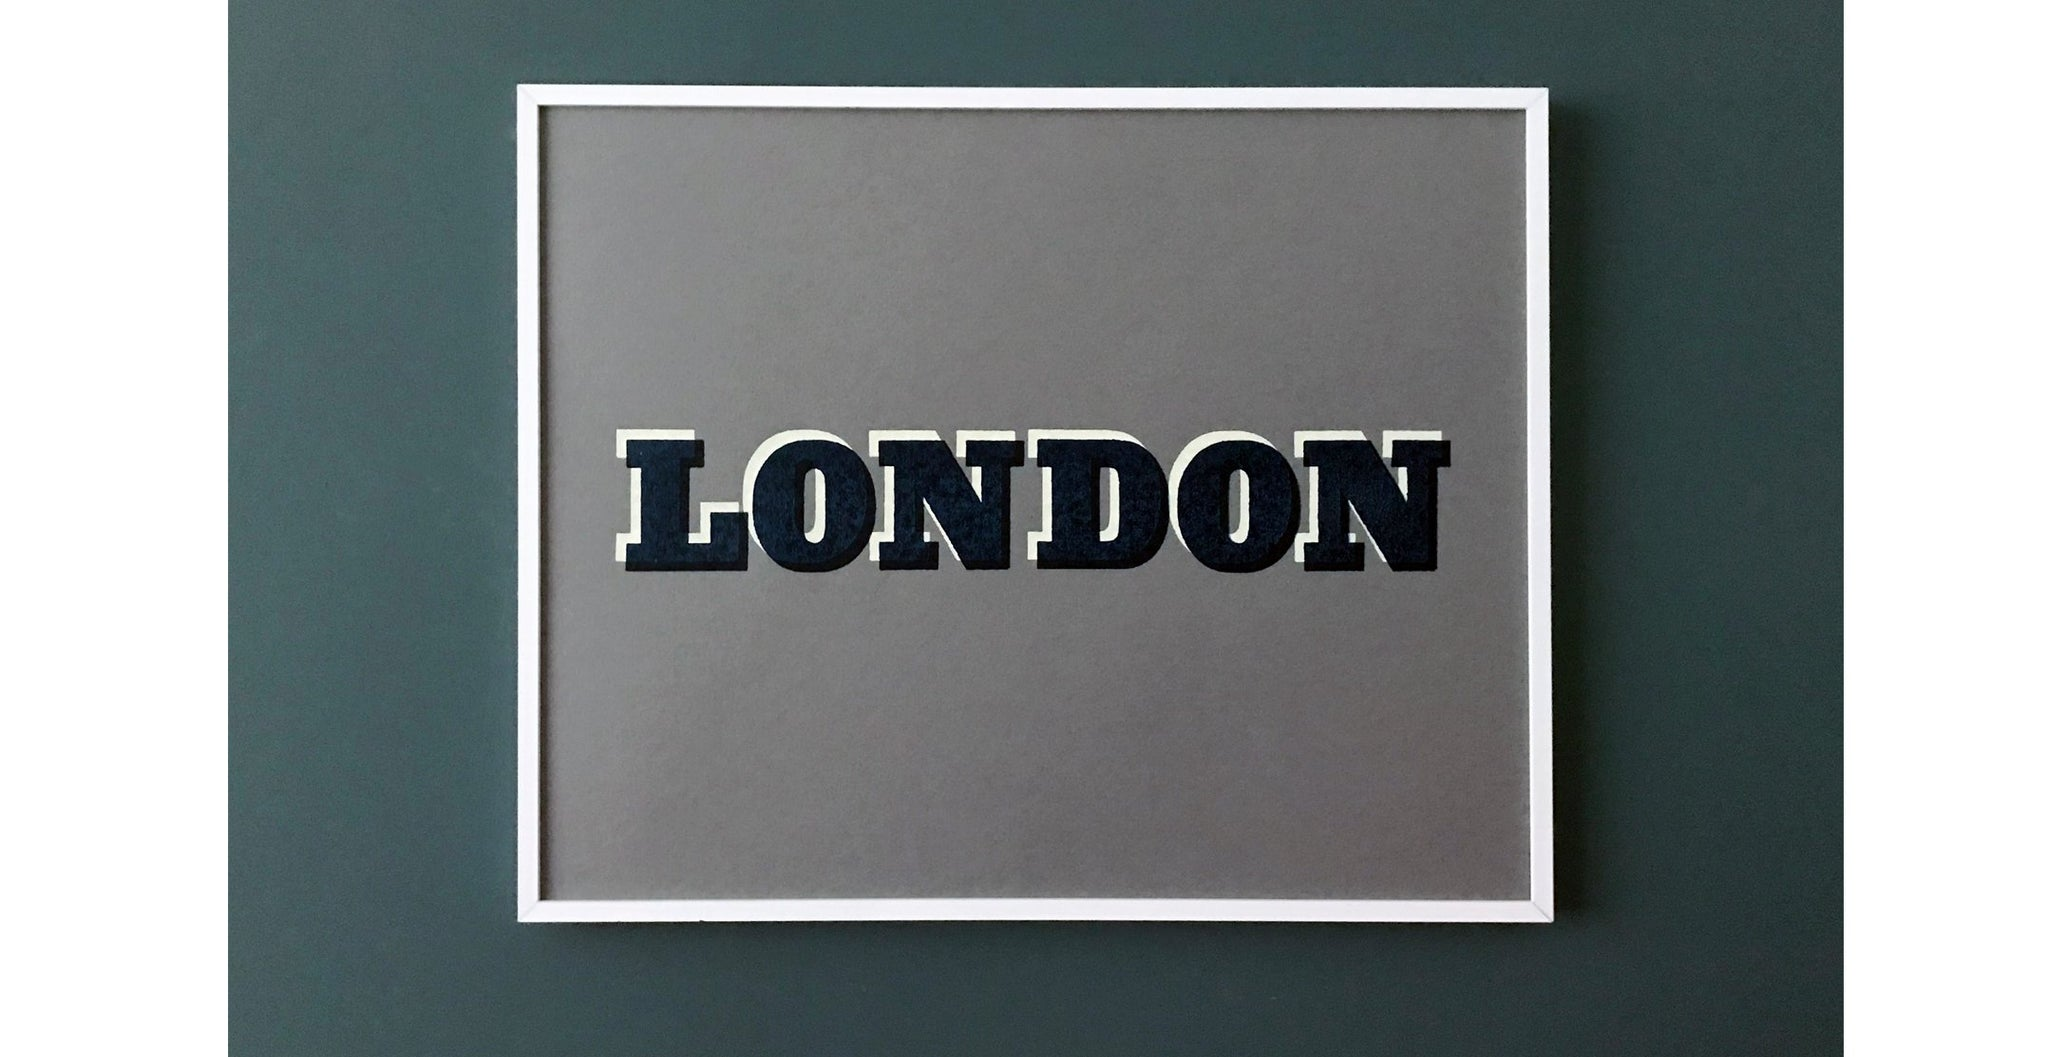 LONDON - STONE 40 x 50 - Dandy Star